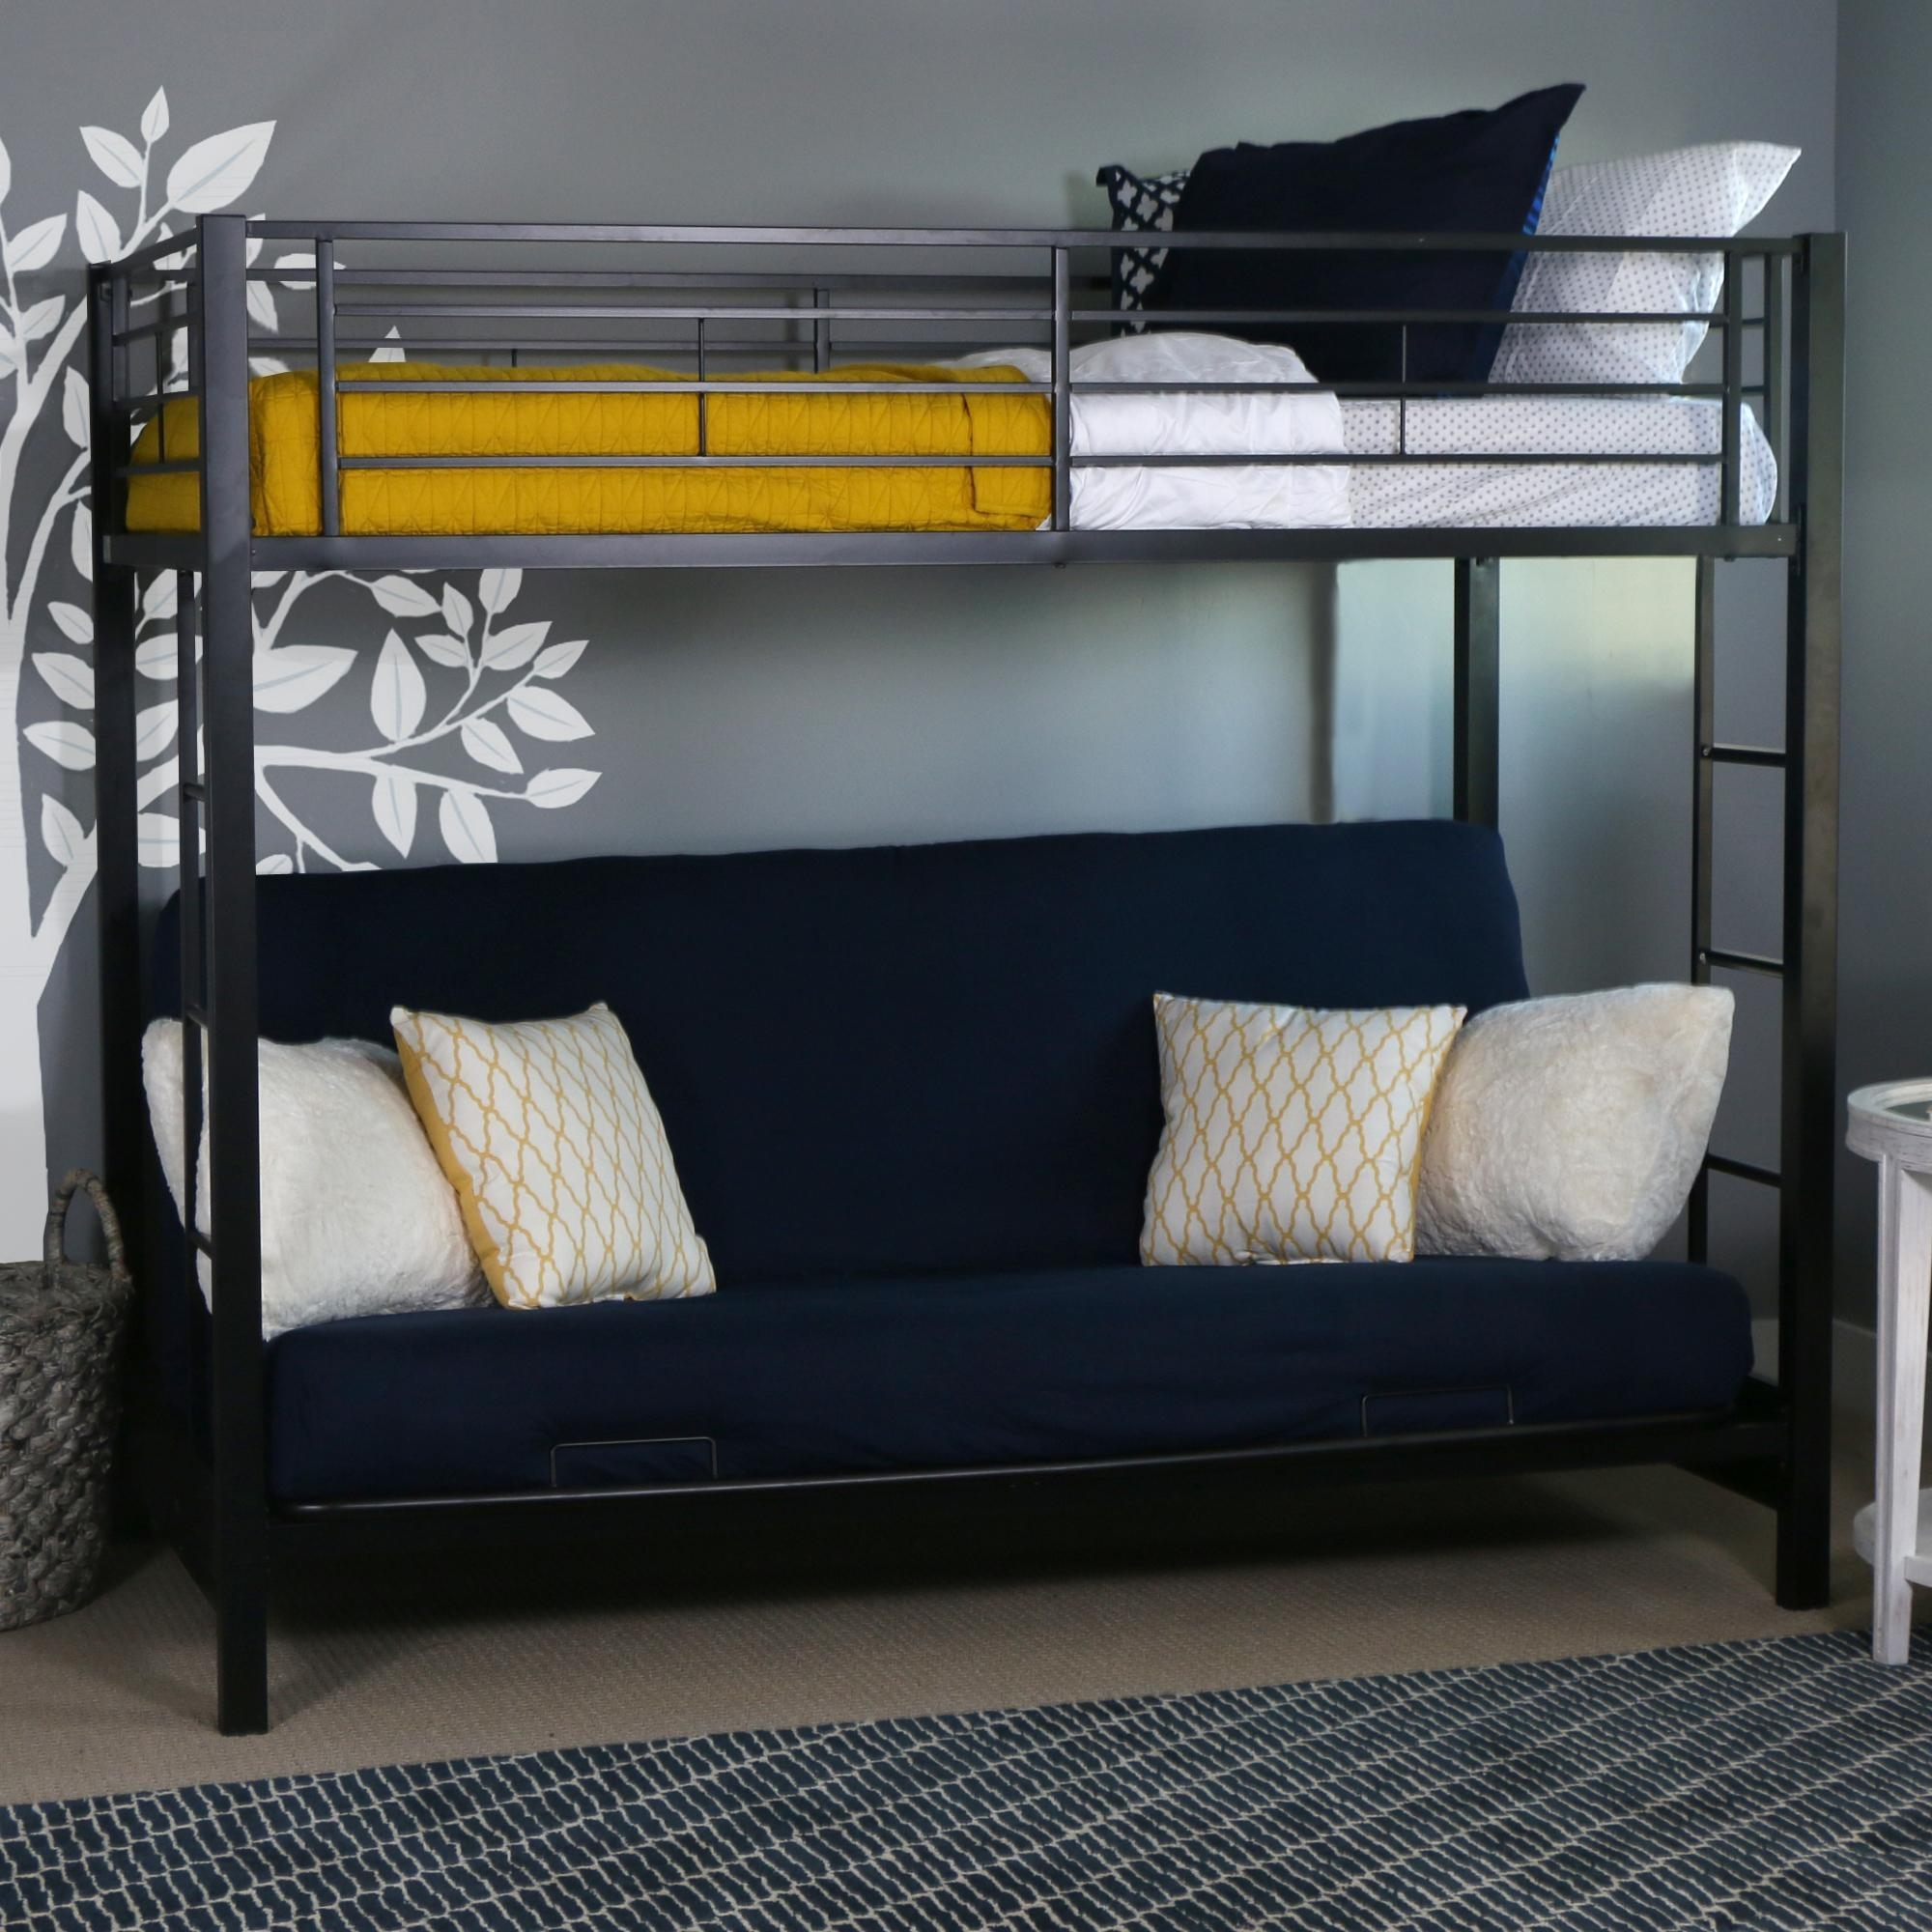 Bed With Bed Underneath – Creditrestore For Bunk Bed With Sofas Underneath (Image 3 of 20)